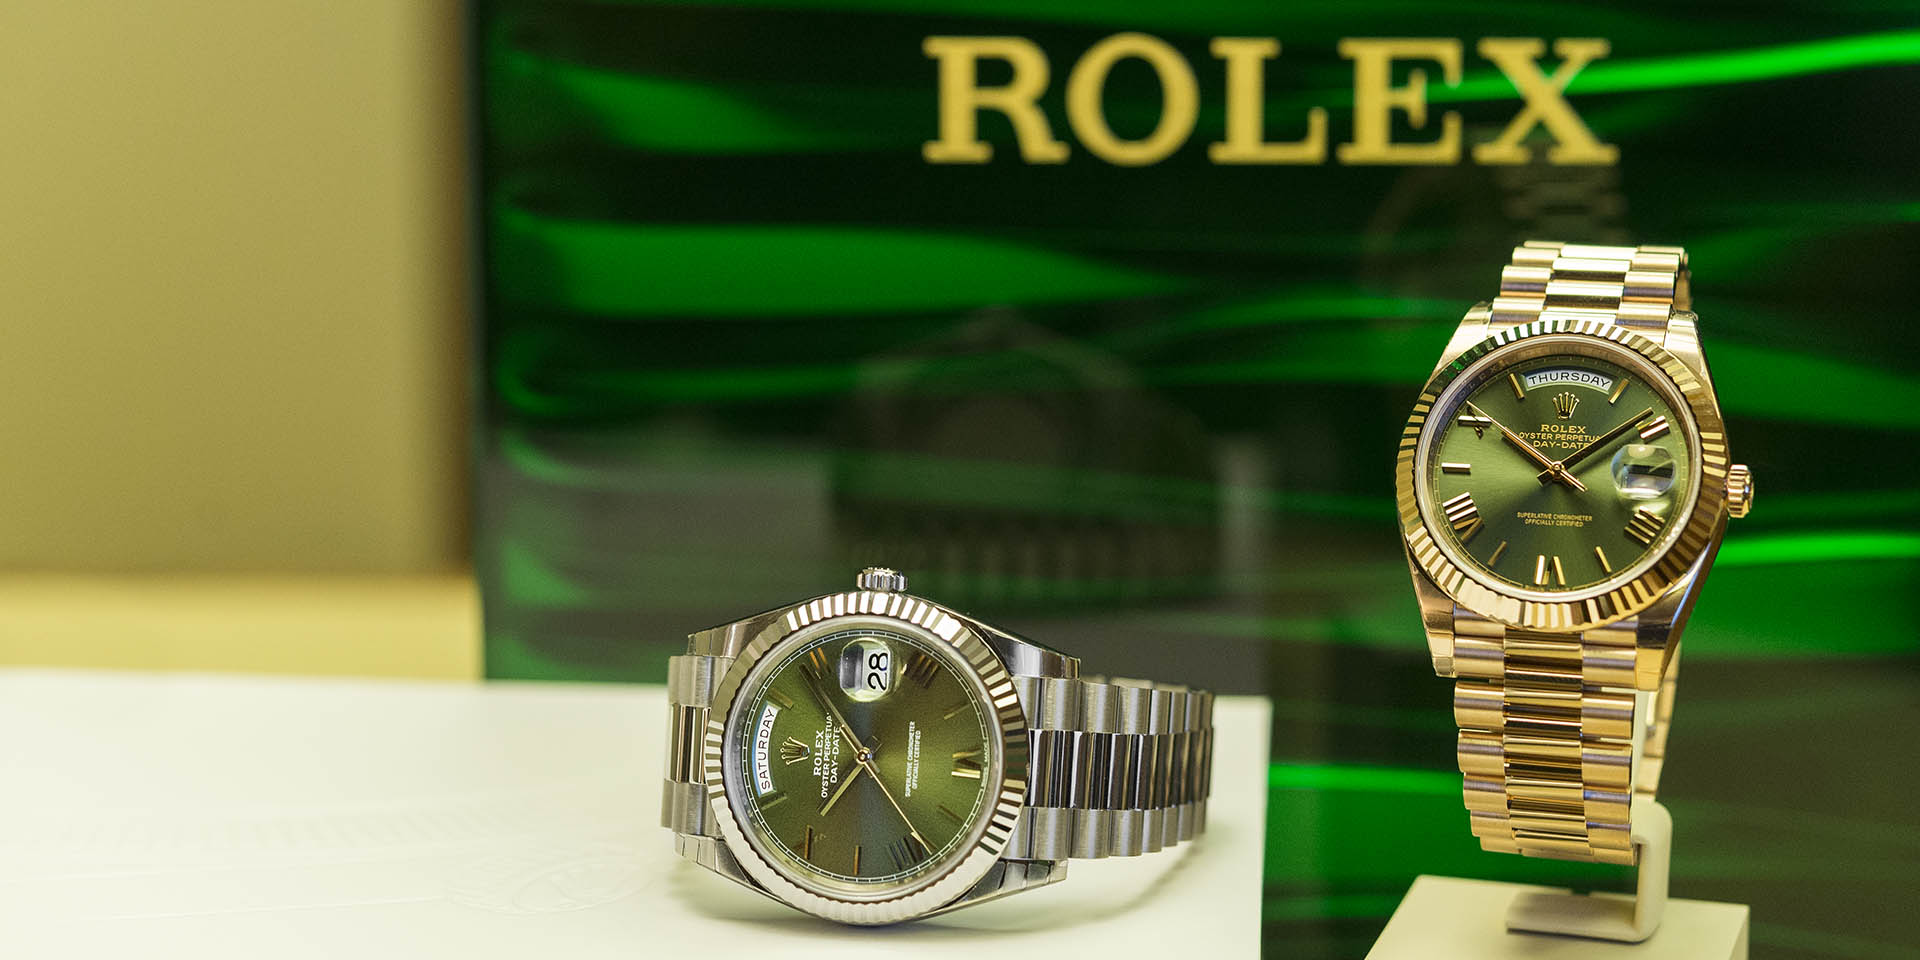 ROLEX-OYSTER-PERPETUAL-DAY-DATE-228235-1-.JPG